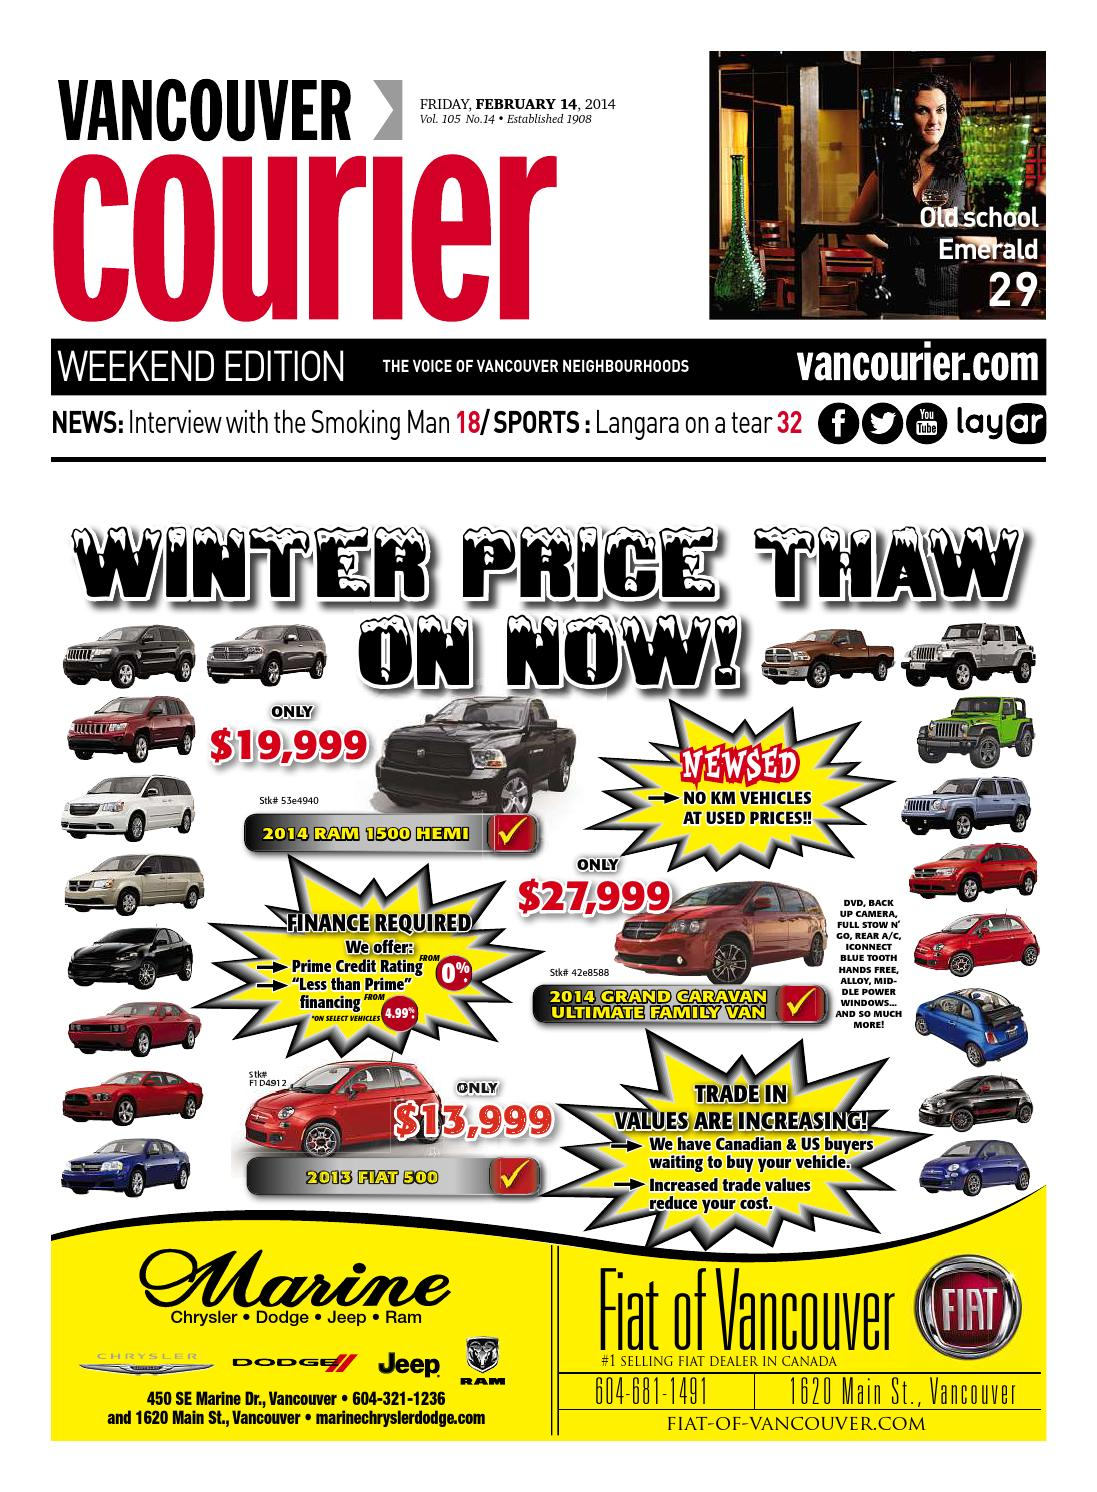 e64e44dbeb9 Vancouver Courier February 14 2014 by Vancouver Courier - issuu